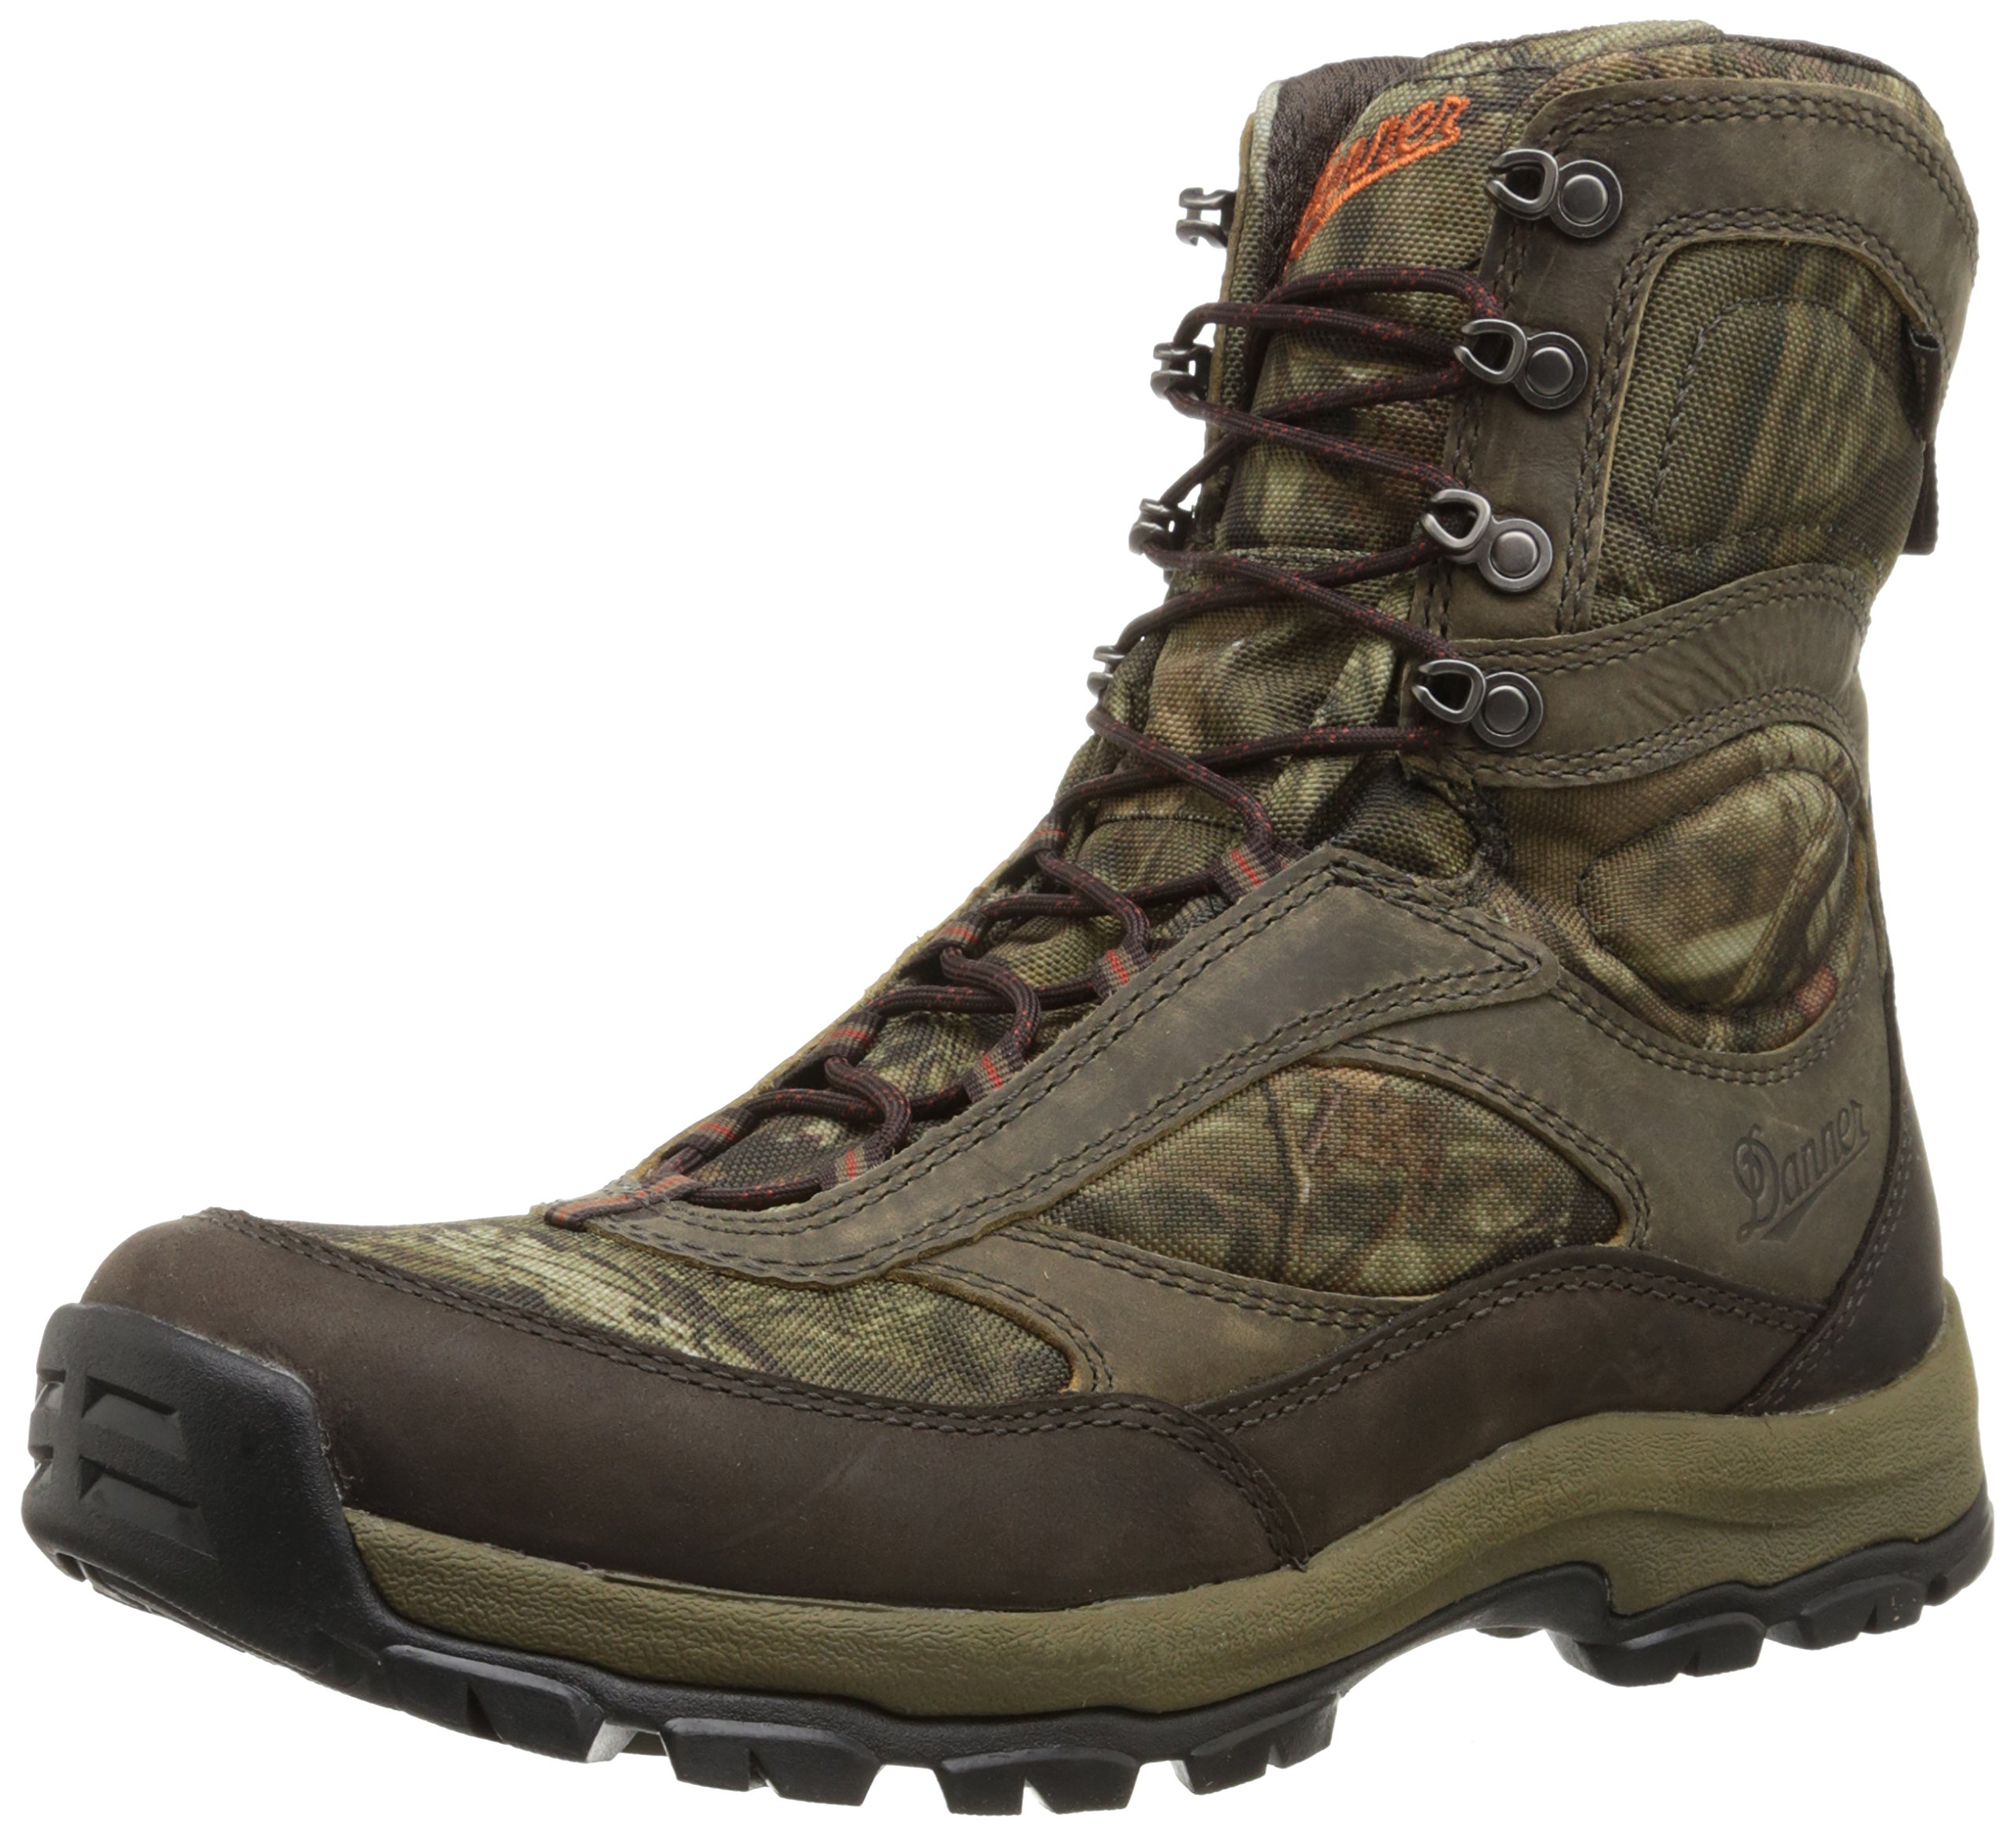 Danner Women's High Ground 8'' Break-Up Infinity Hunting Boot,Mossy Oak,8 M US